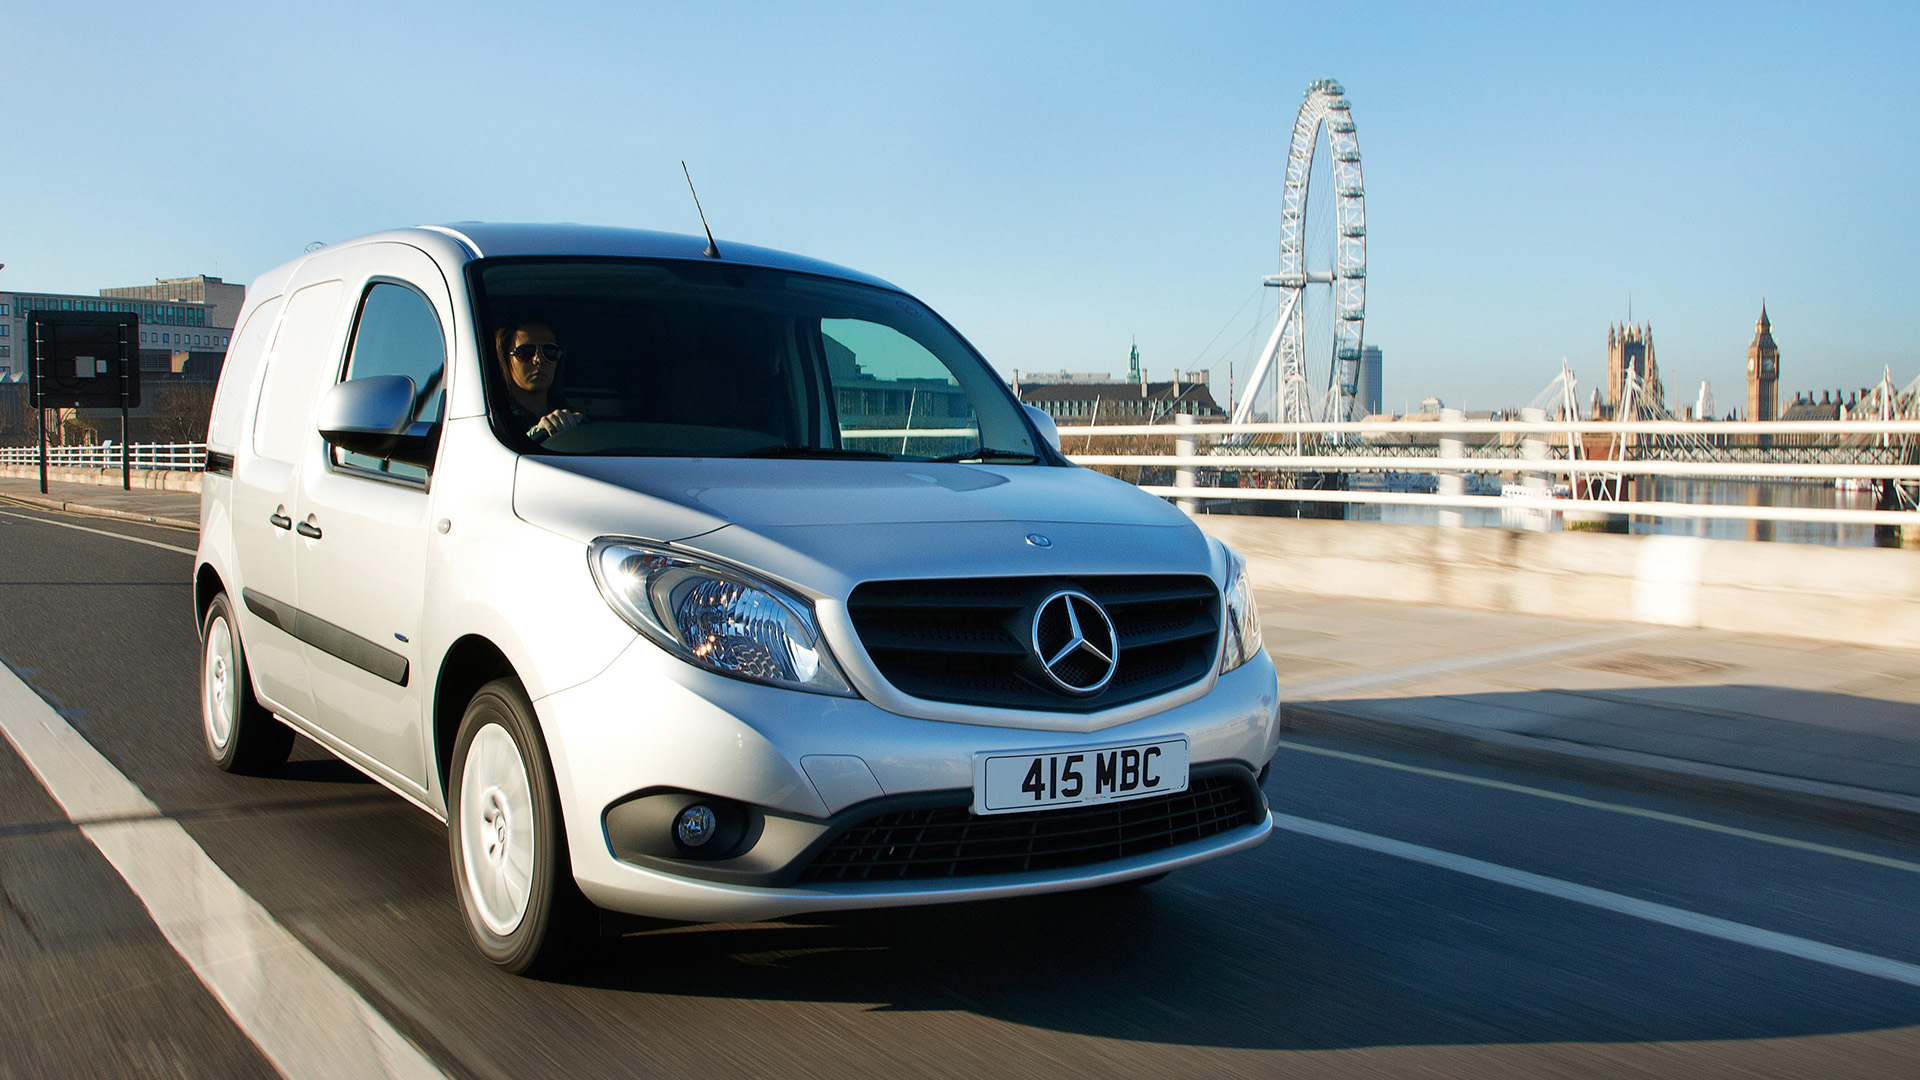 Used Mercedes Benz Citan Vans For Sale Autotrader Vans